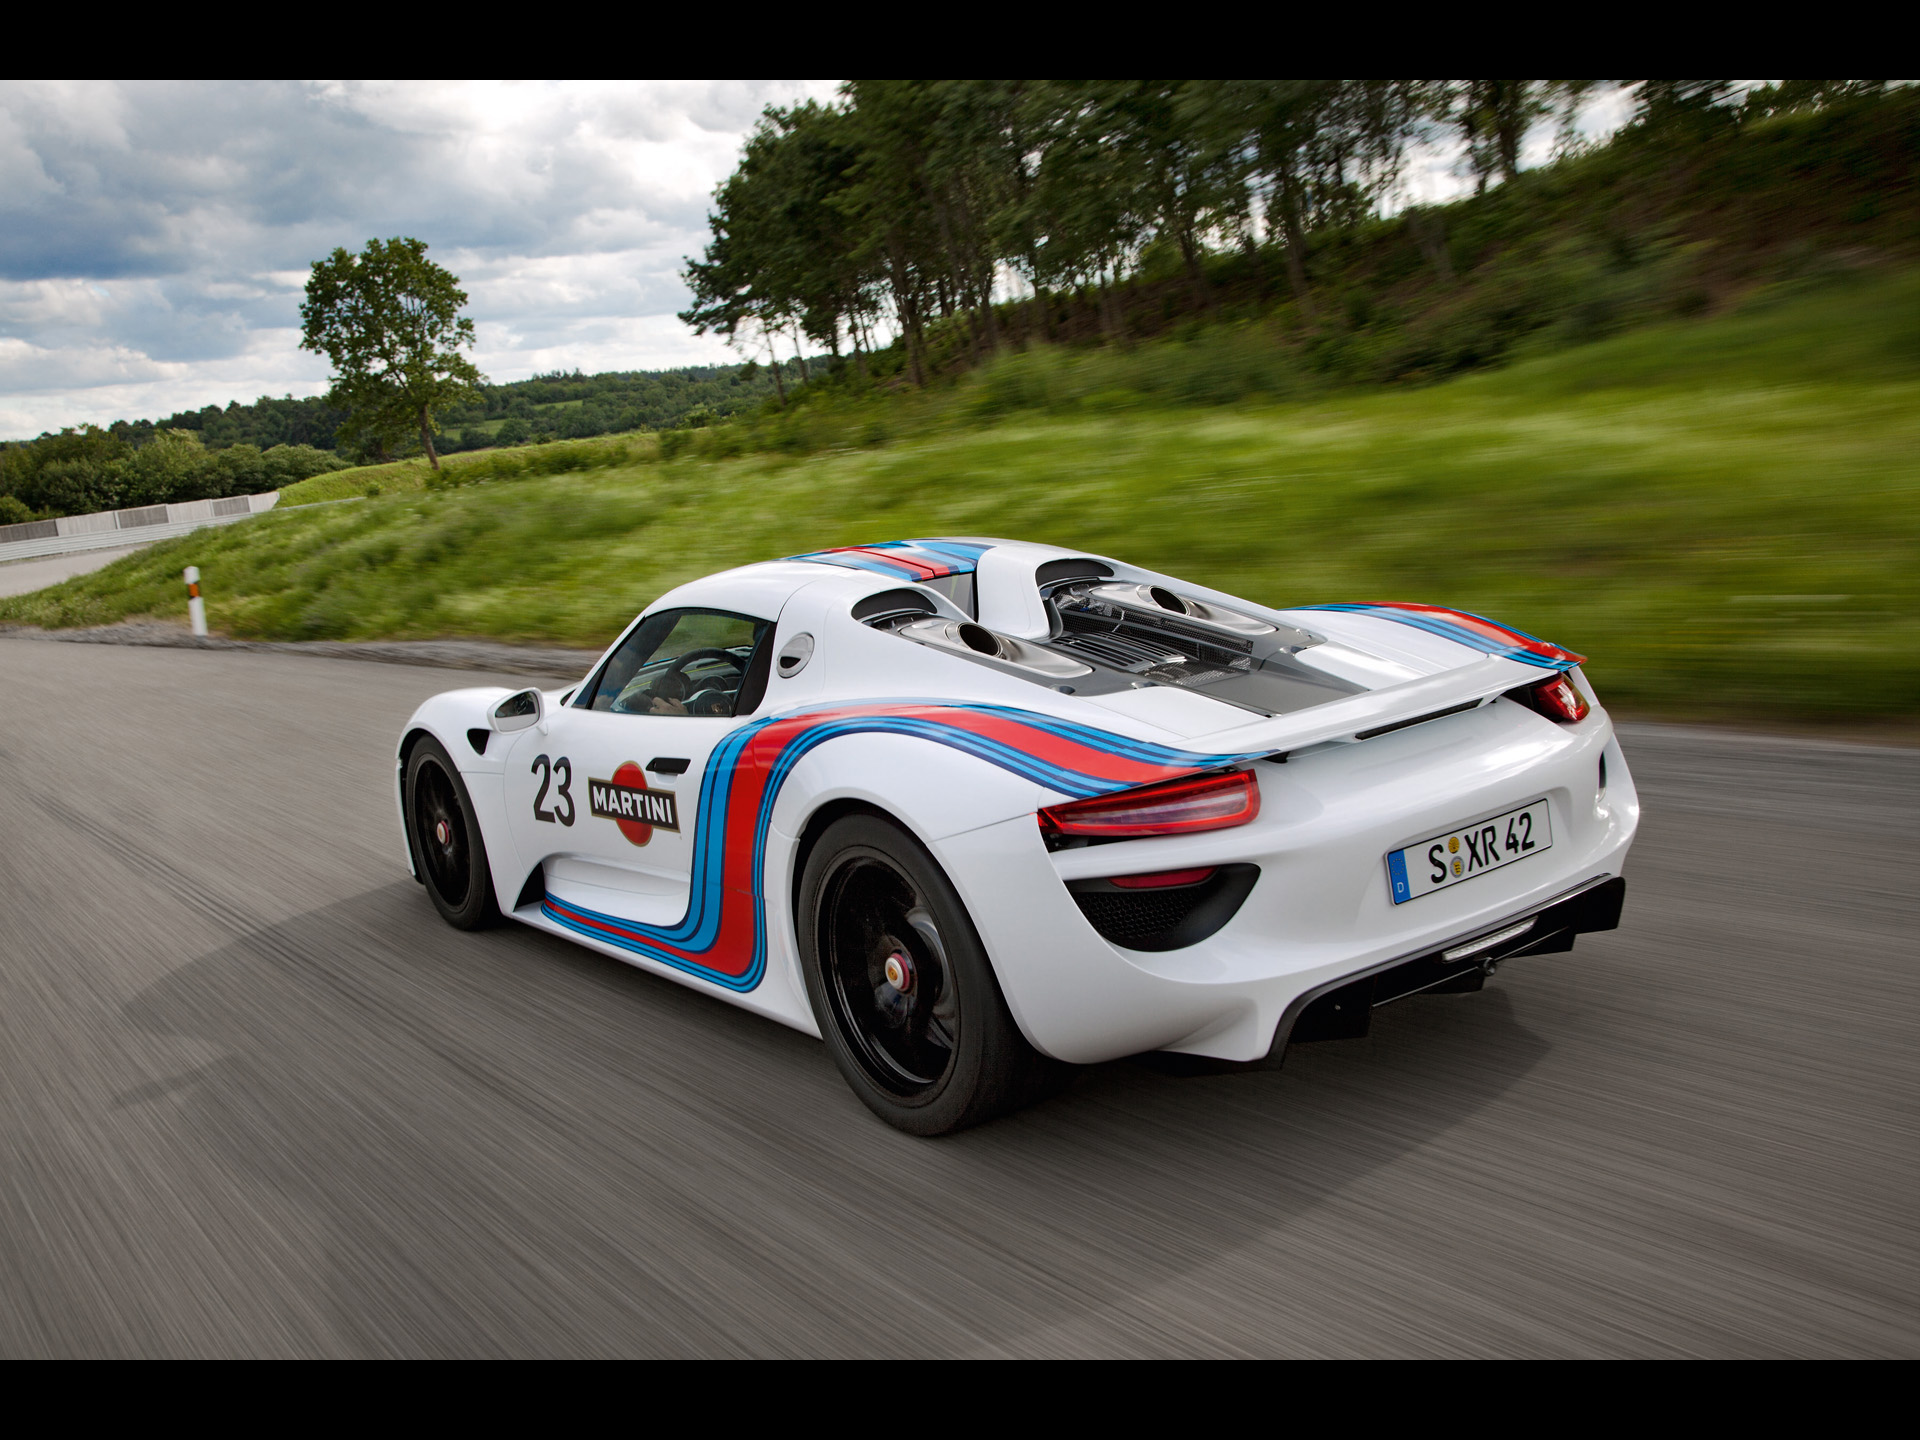 2012 porsche 918 spyder martini racing design prototype. Black Bedroom Furniture Sets. Home Design Ideas